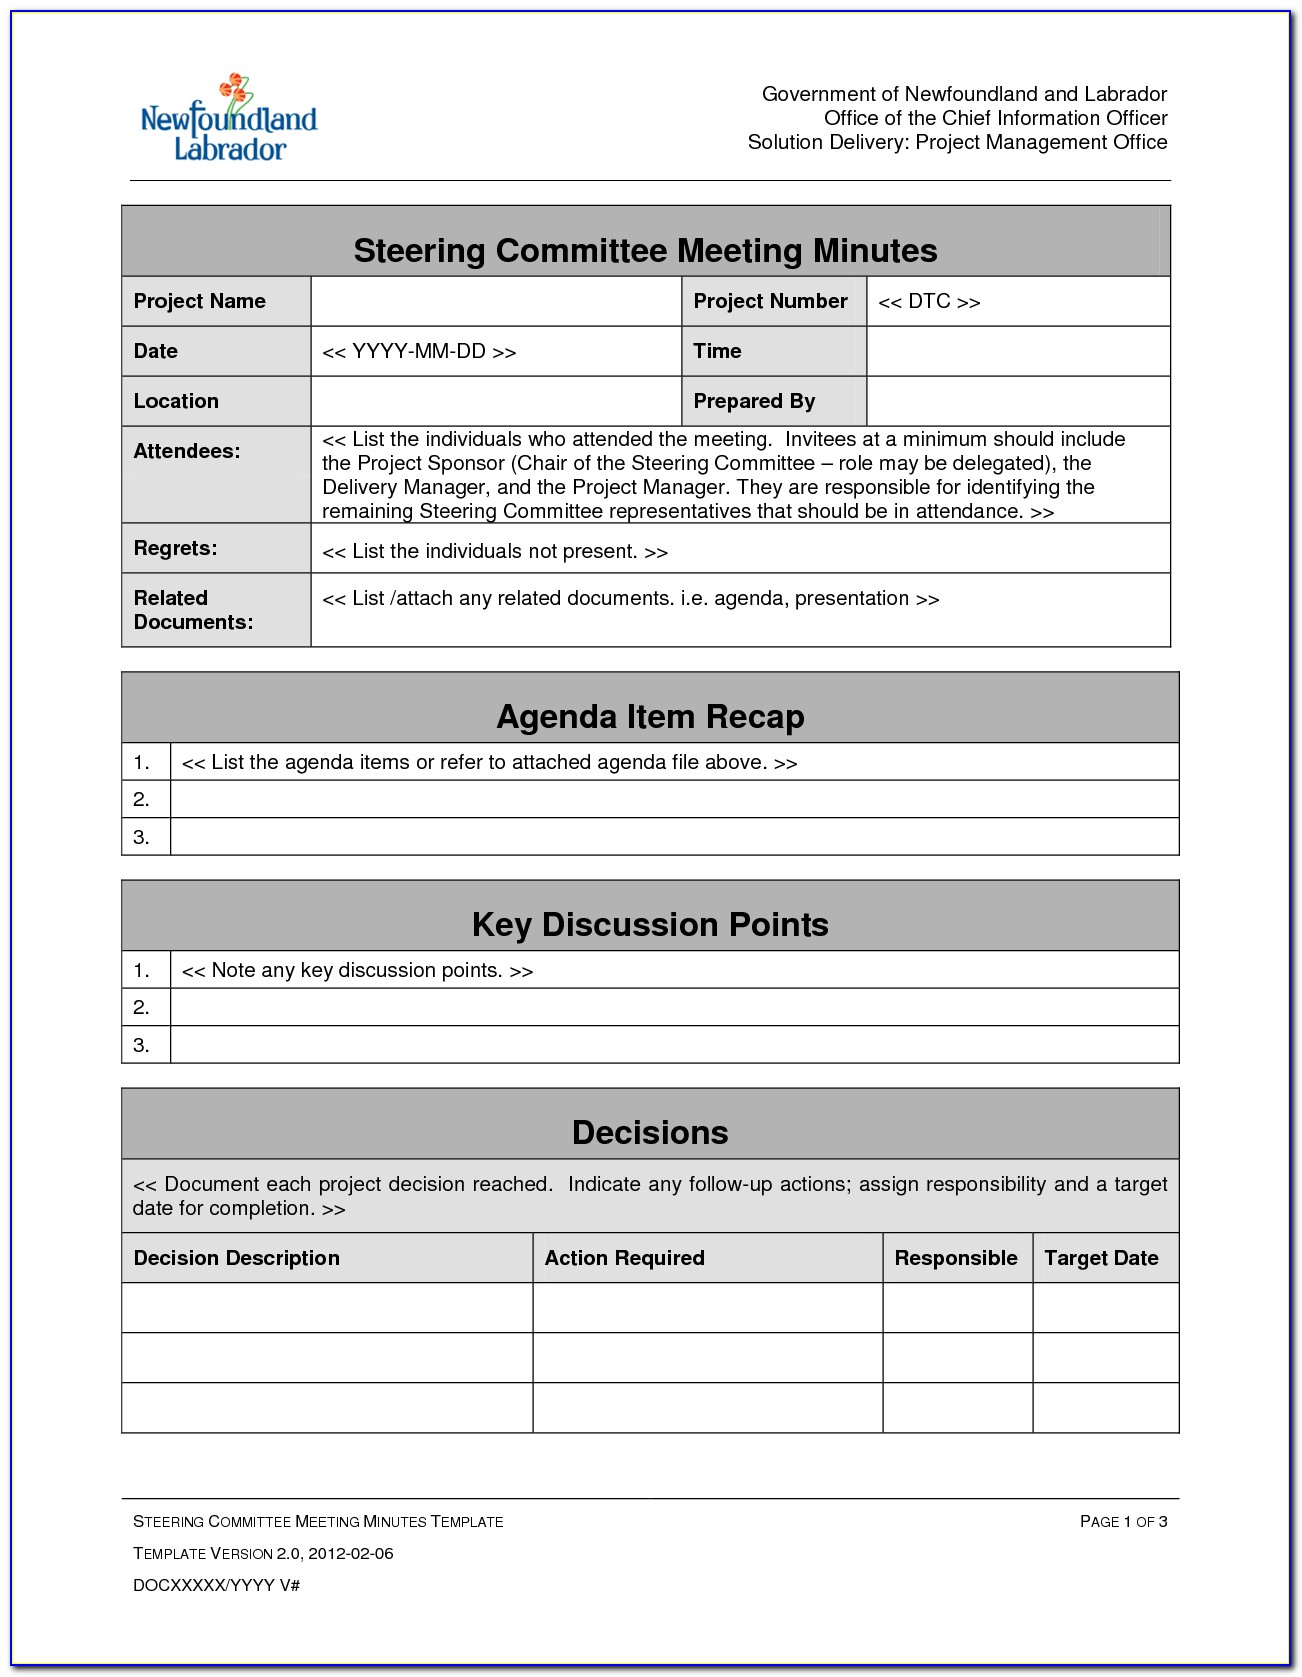 Project Management Meeting Agenda Minutes Template